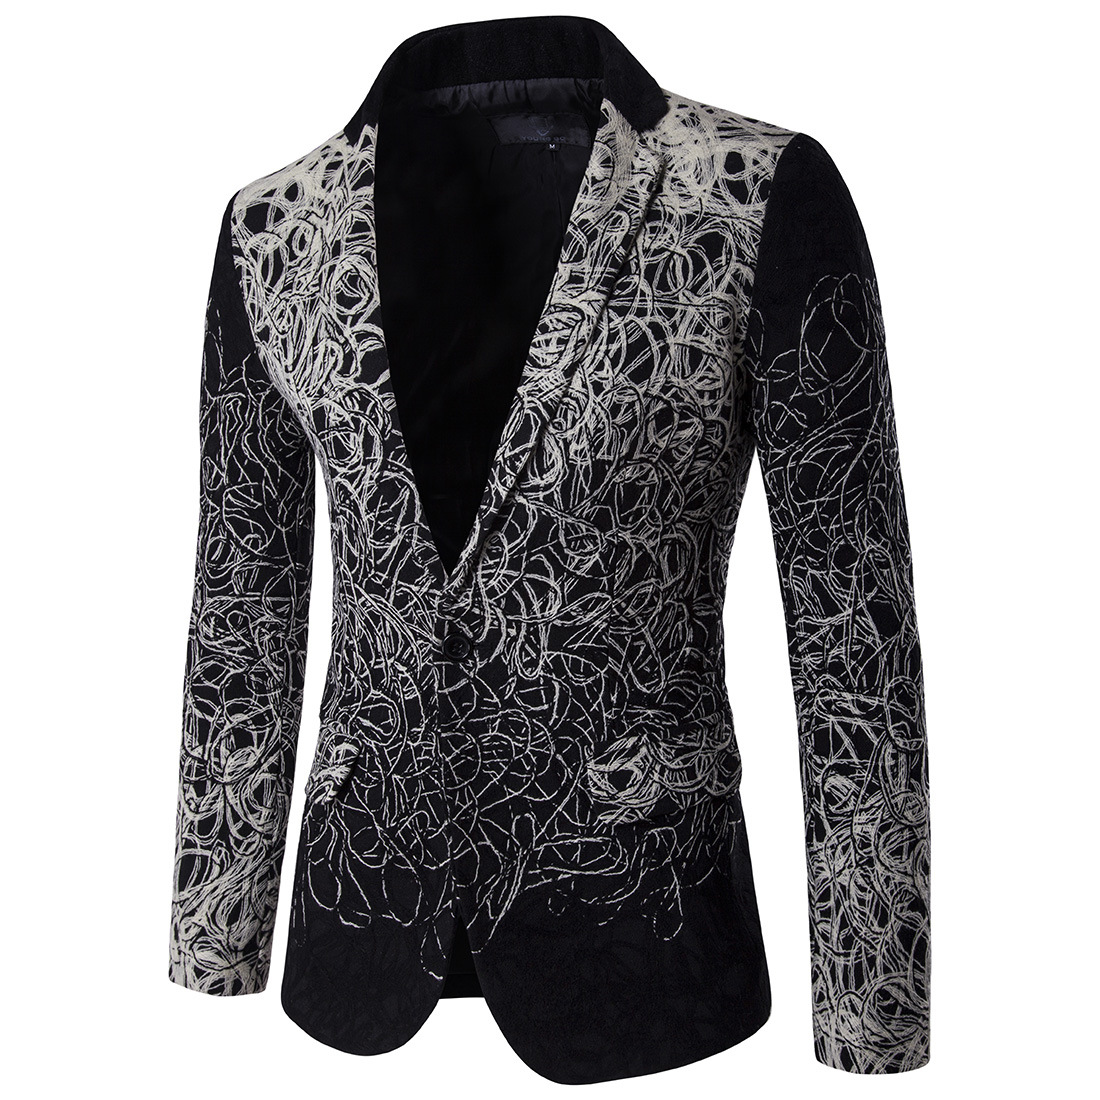 Men's Wear European American Fashion Explosions Outerwear Wholesale Single Breasted Suit Dropshipping Fashion Wedding Blazers